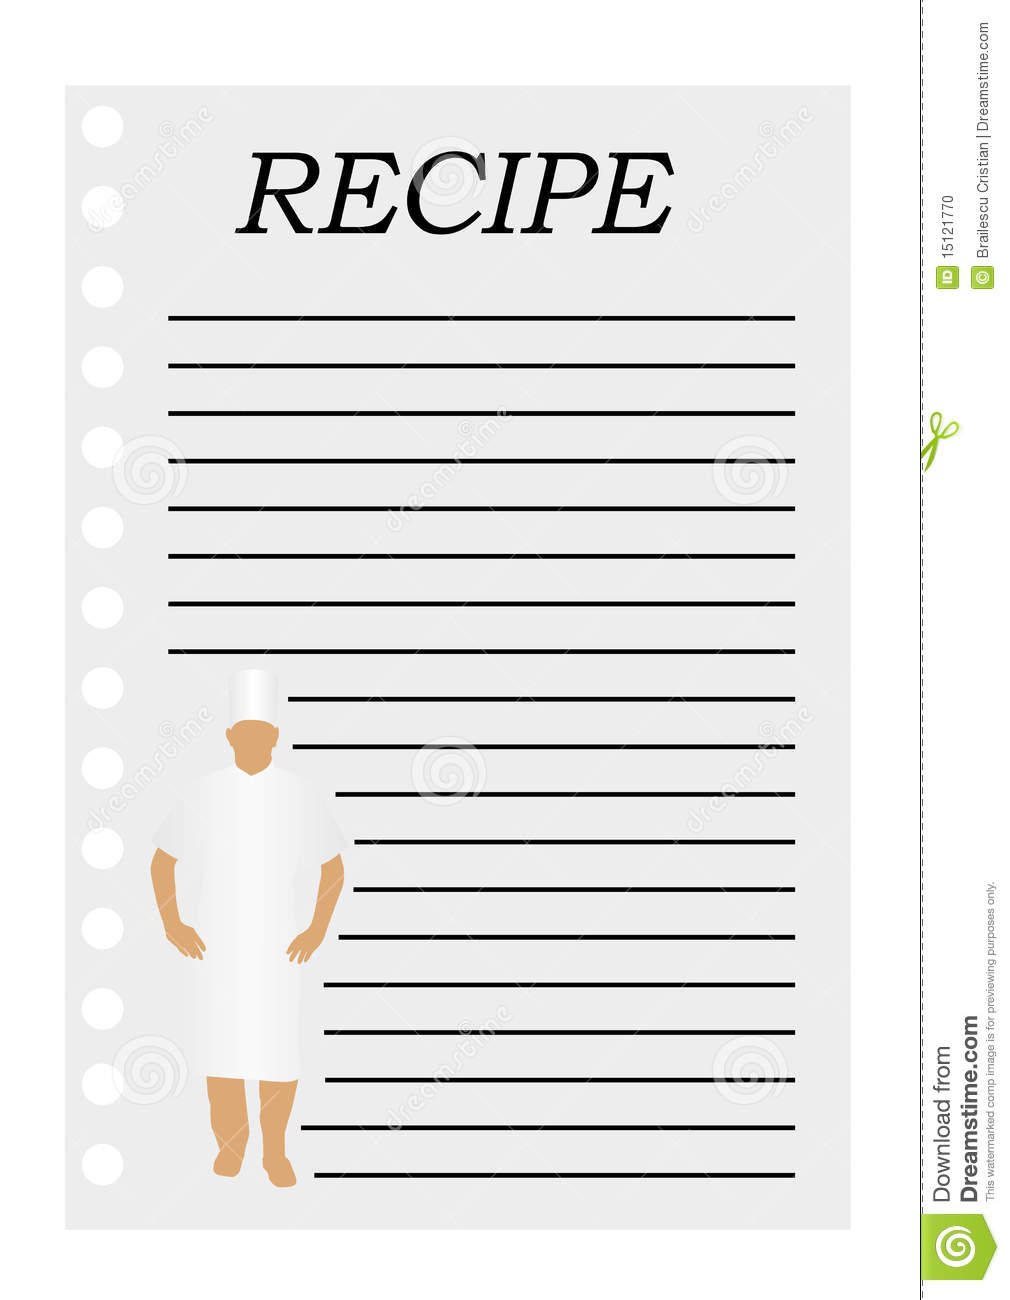 recipe paper Turn your blank paper into usefull recipe cards and templates.